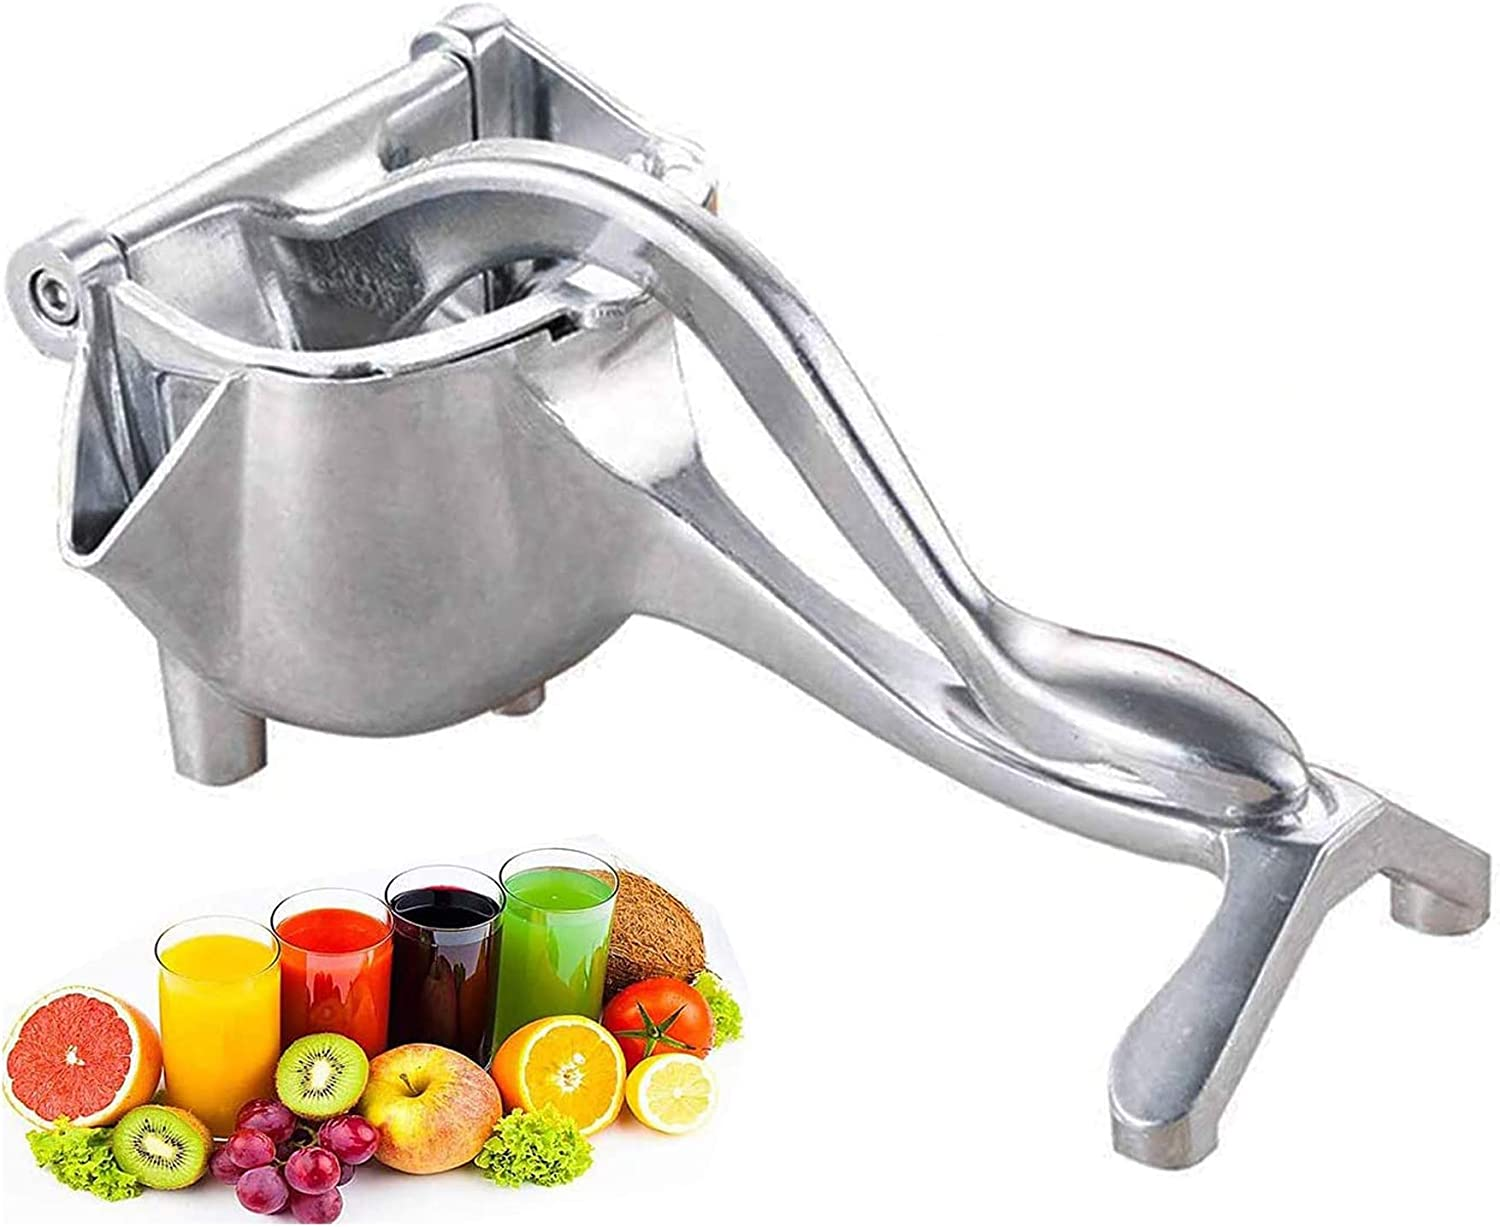 Stainless Steel Manual Fruit Juicer Heavy Duty Alloy Lemon Press Squeezer Premium Quality Lemon Orange Juicer, Lemon Orange Juicer Fruit Citrus Extractor Tool